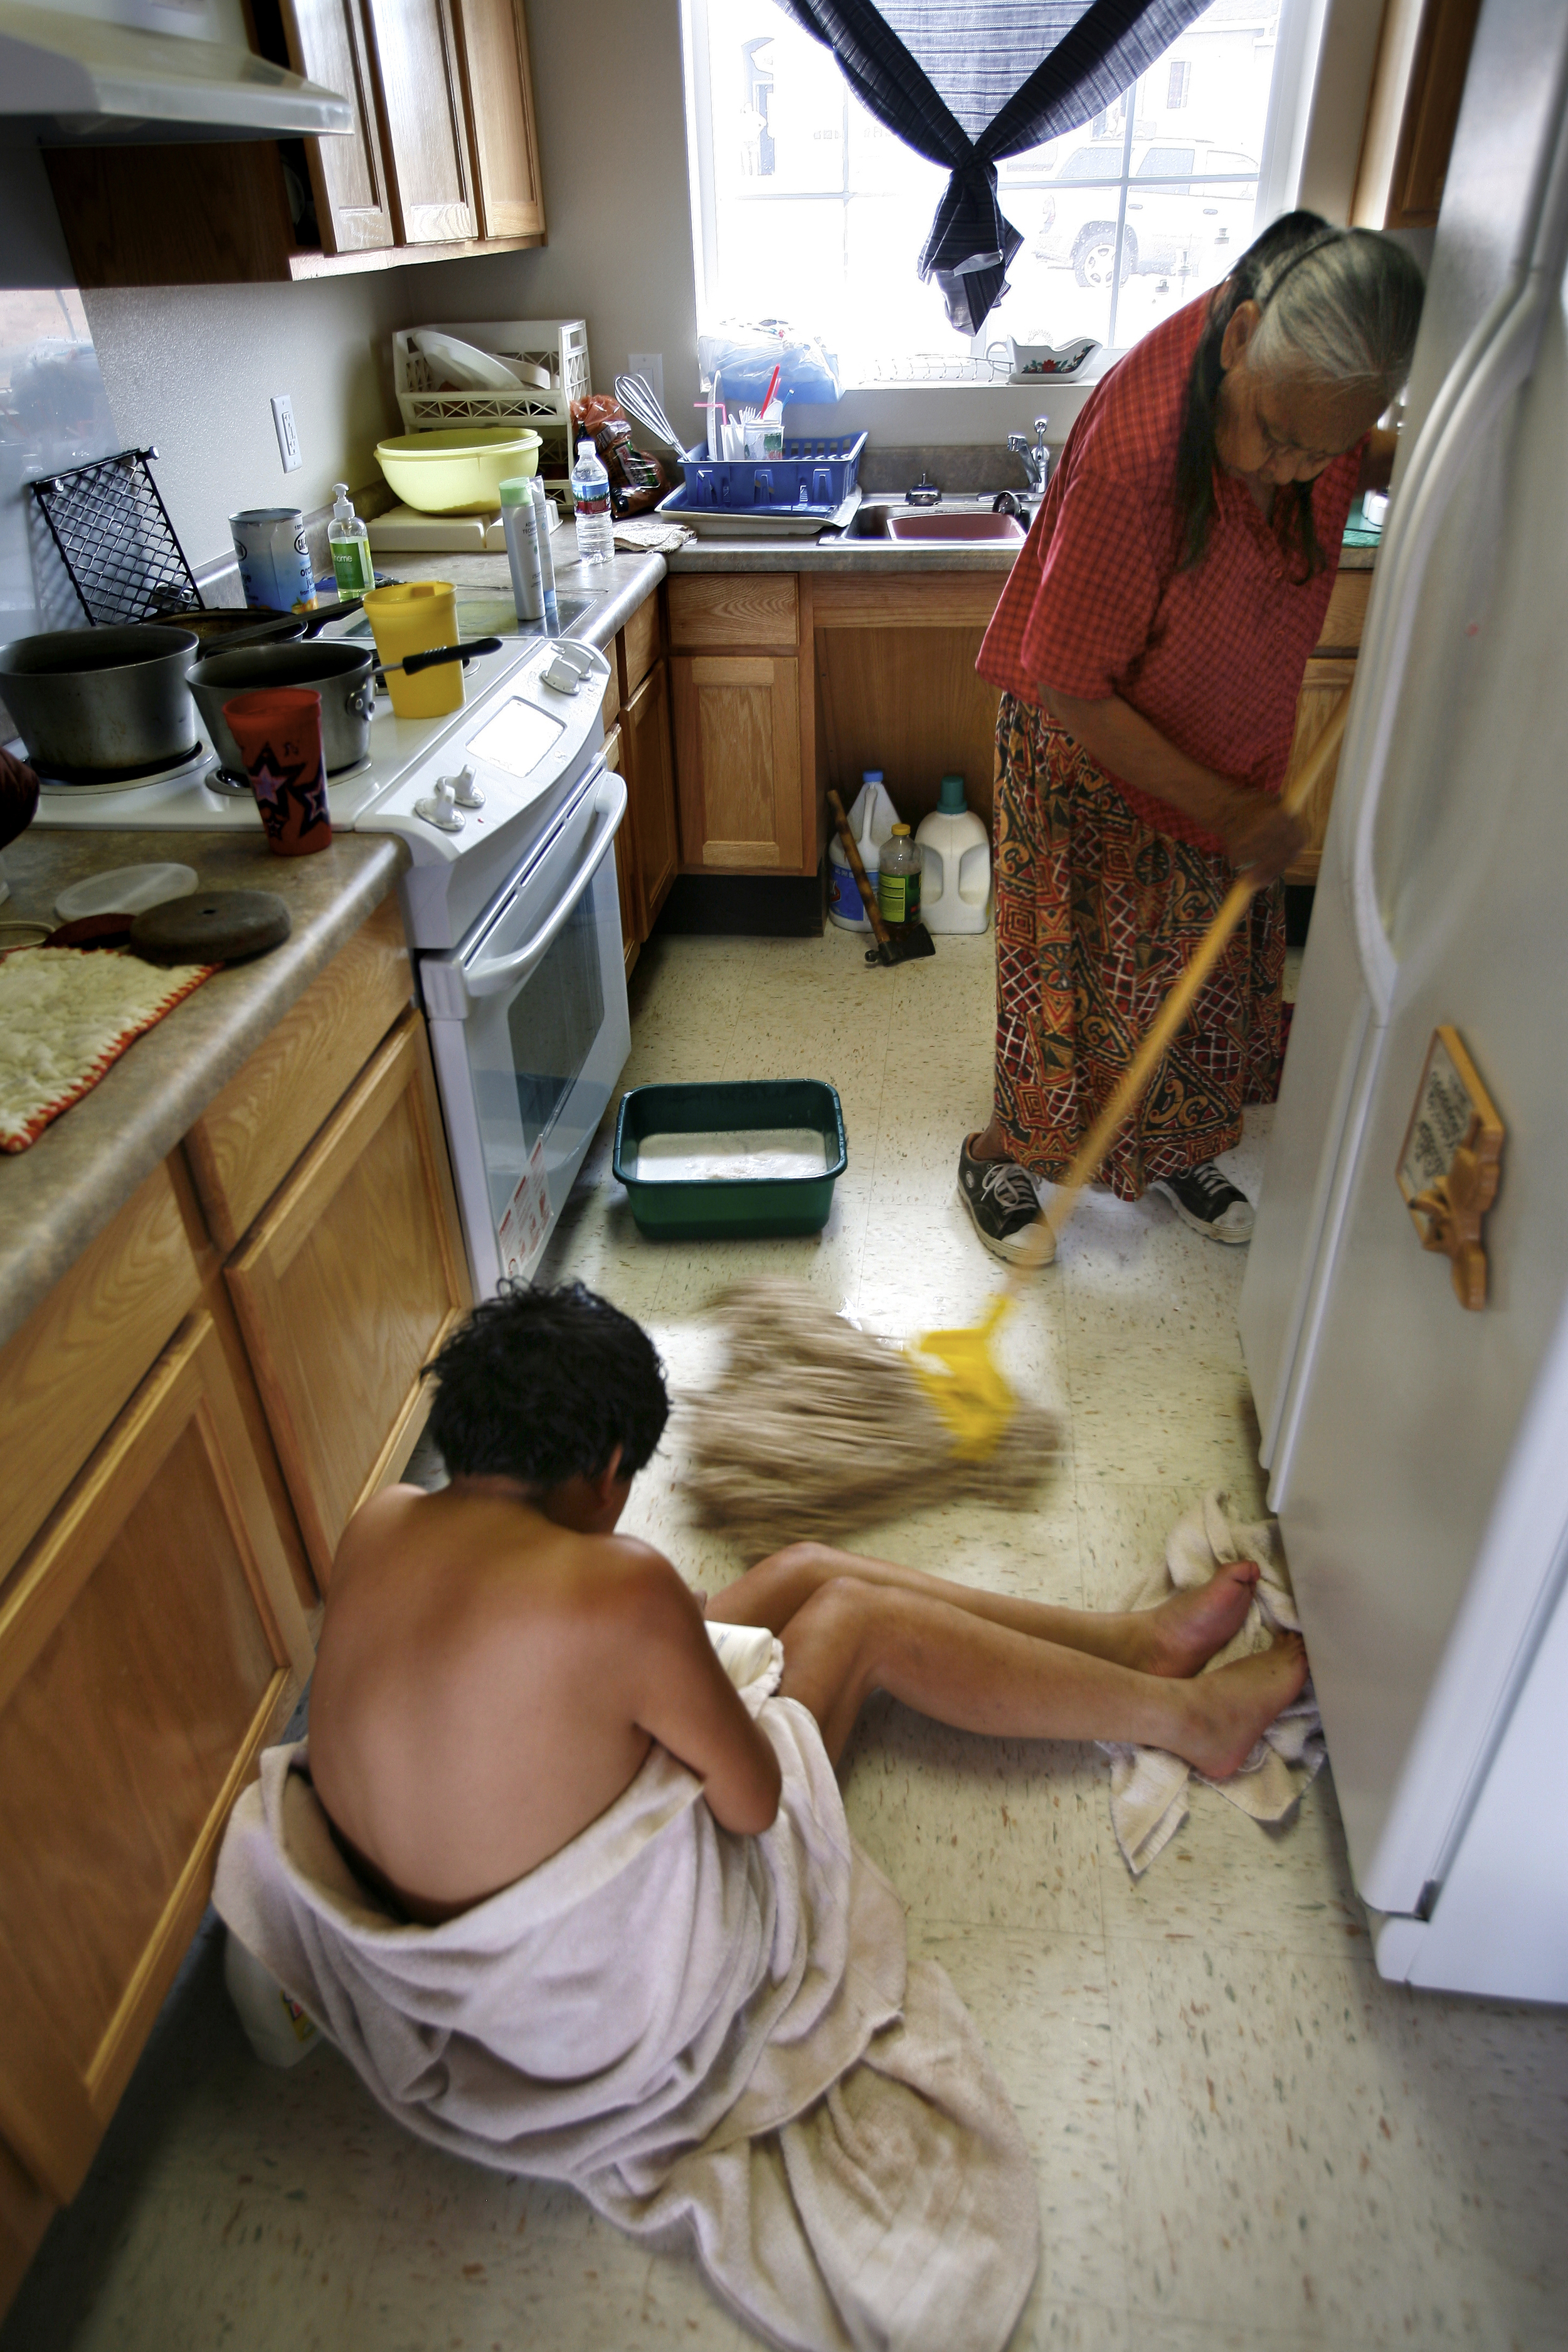 No longer able to get into a bathtub or shower, Laura Neztsosie is bathed by her mother out of bucket on the kitchen floor.©Gail Fisher Los Angeles Times